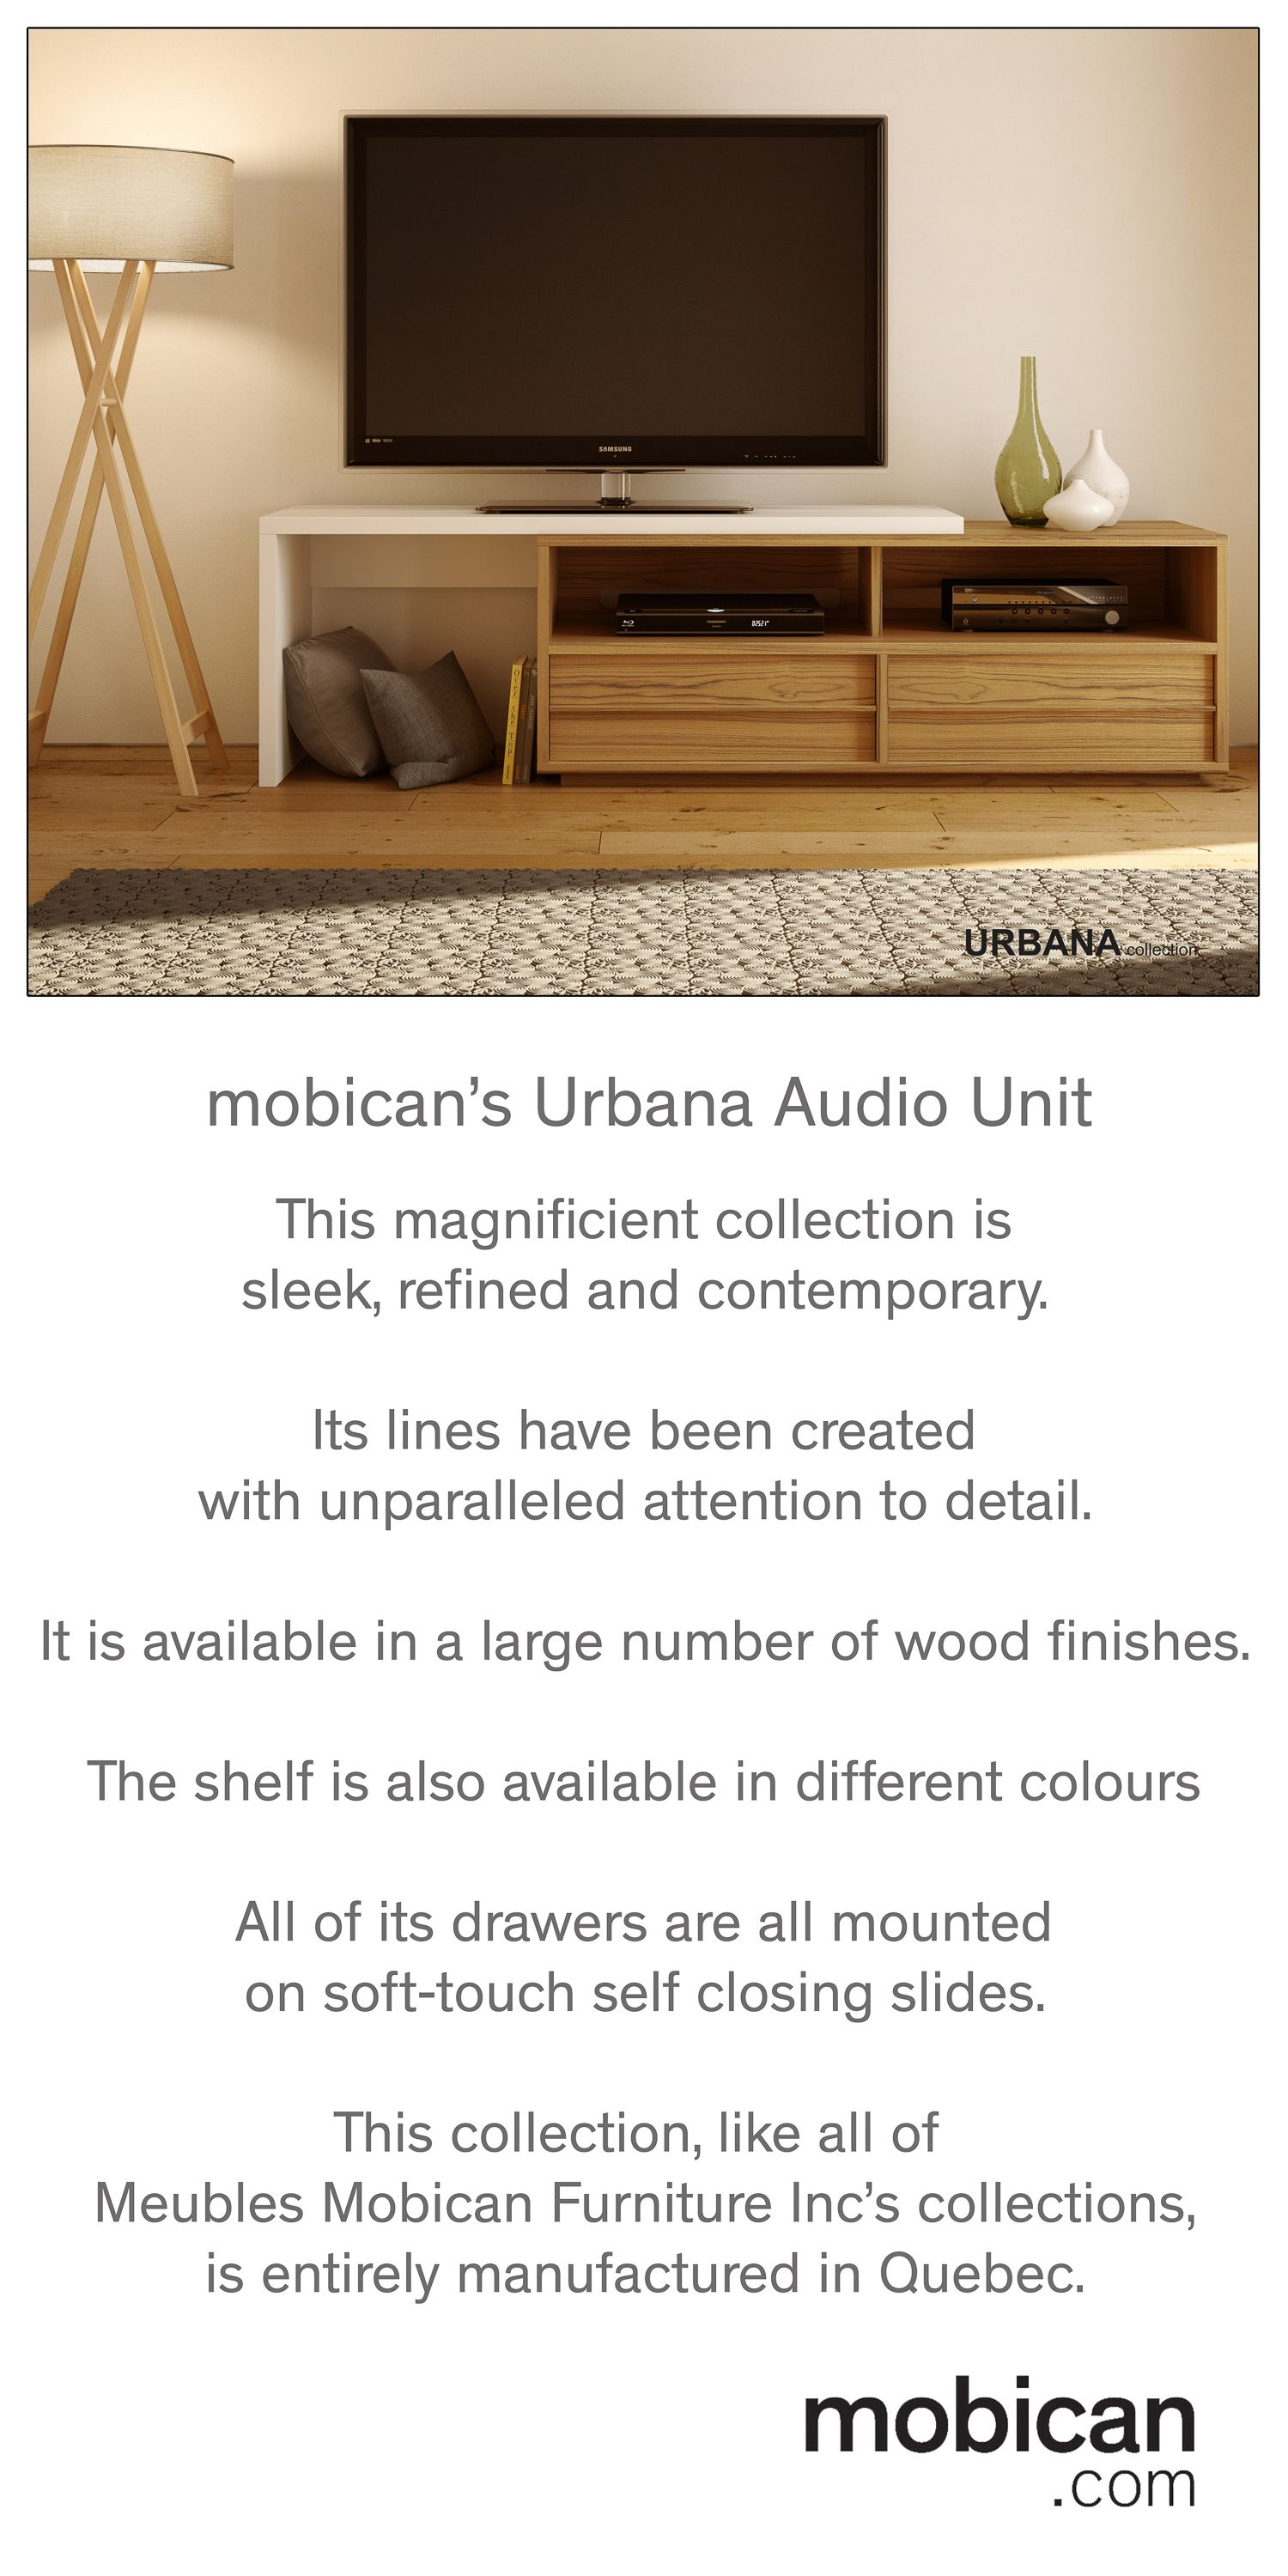 Meubles Mobican Furniture This Gorgeous Audio Unit From Meubles Mobican Furniture Inc